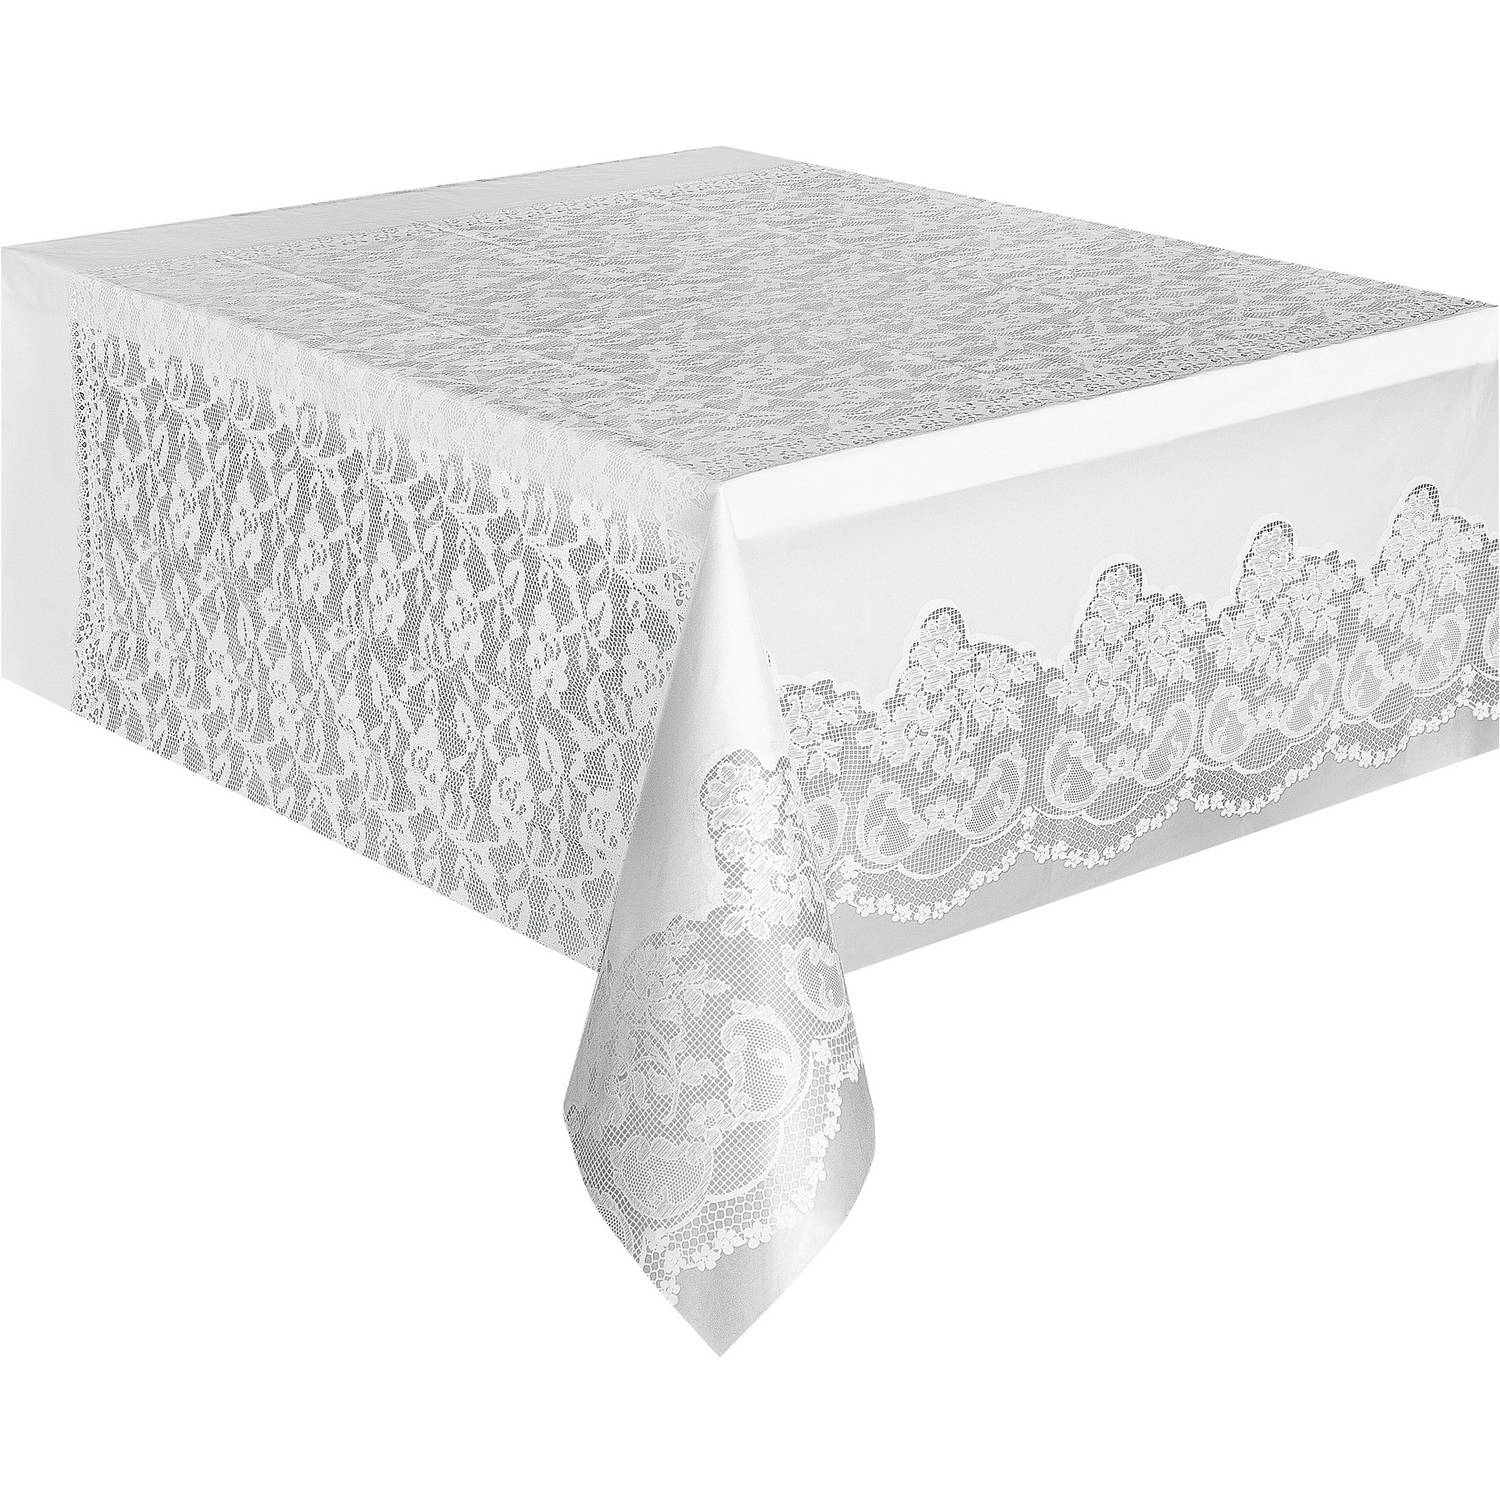 "Plastic White Lace Table Cover, 108"" x 54"""